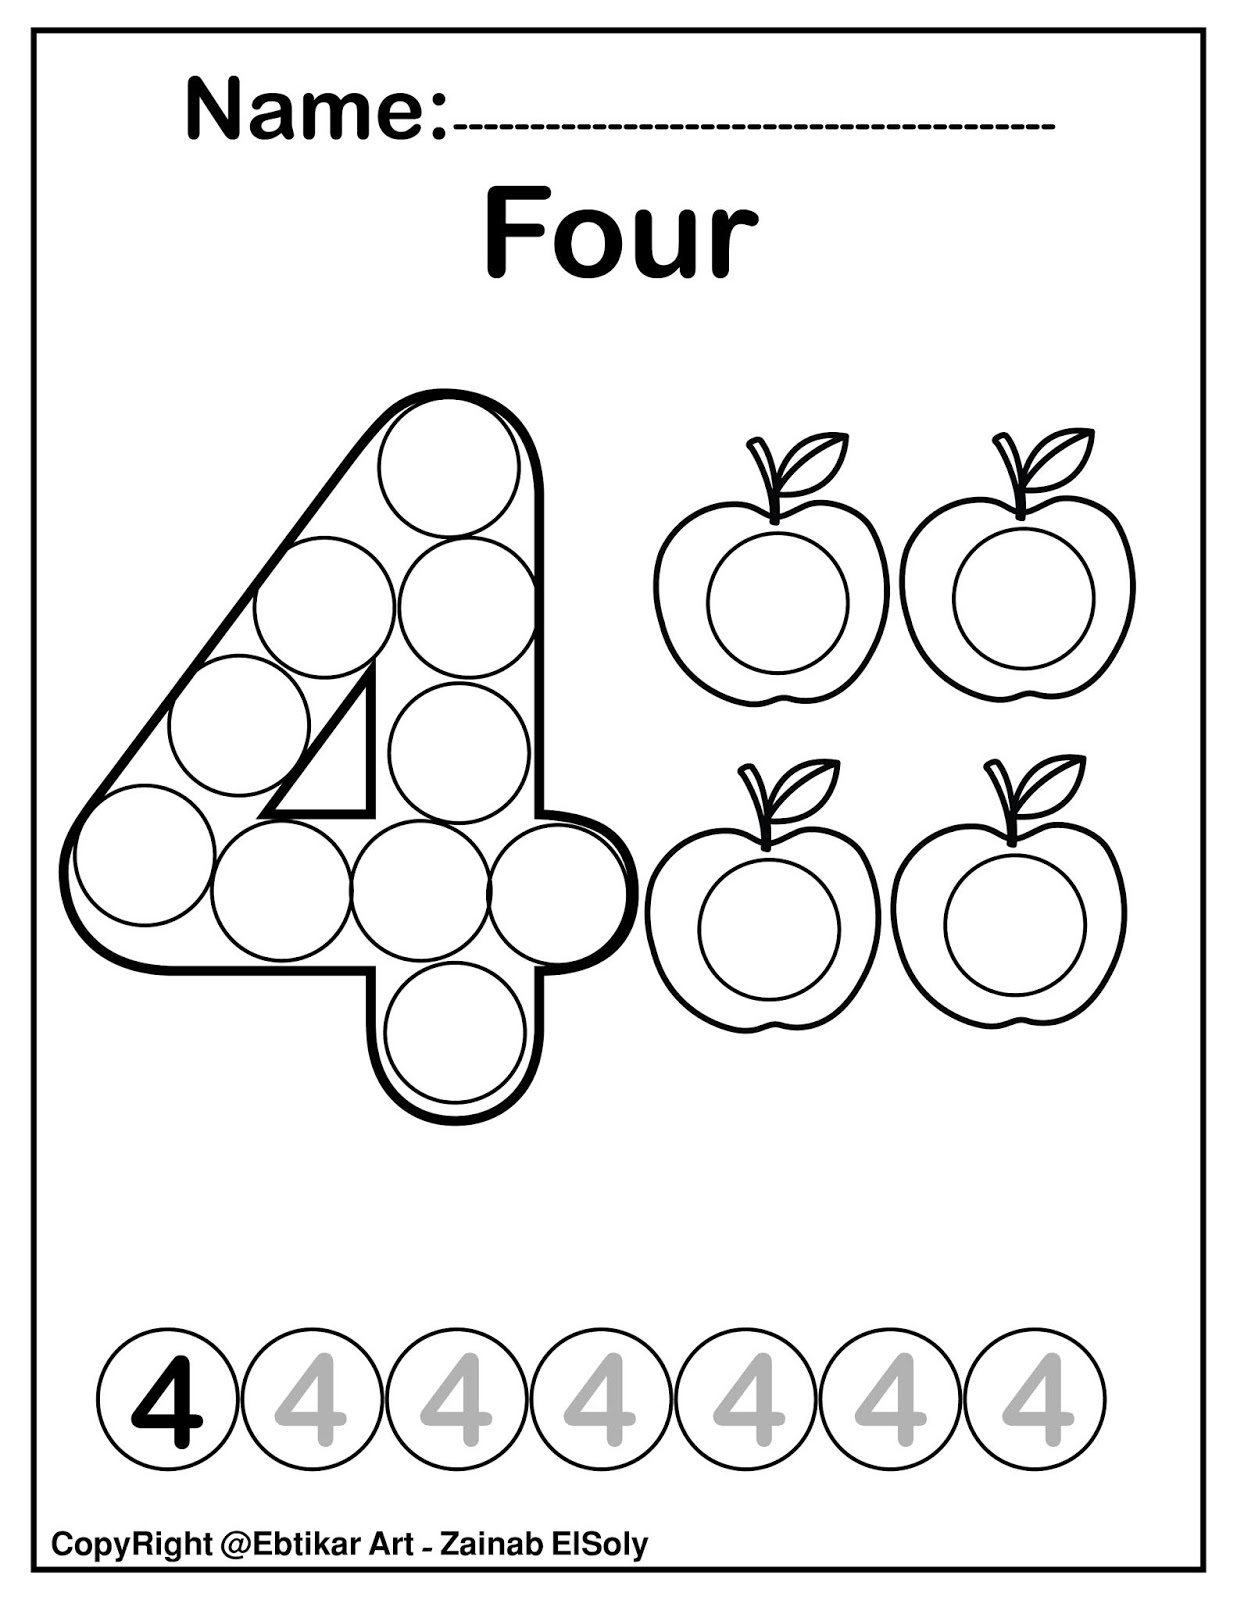 dot to dot colouring sheets awesome apple polka dot coloring page with images to dot dot sheets colouring